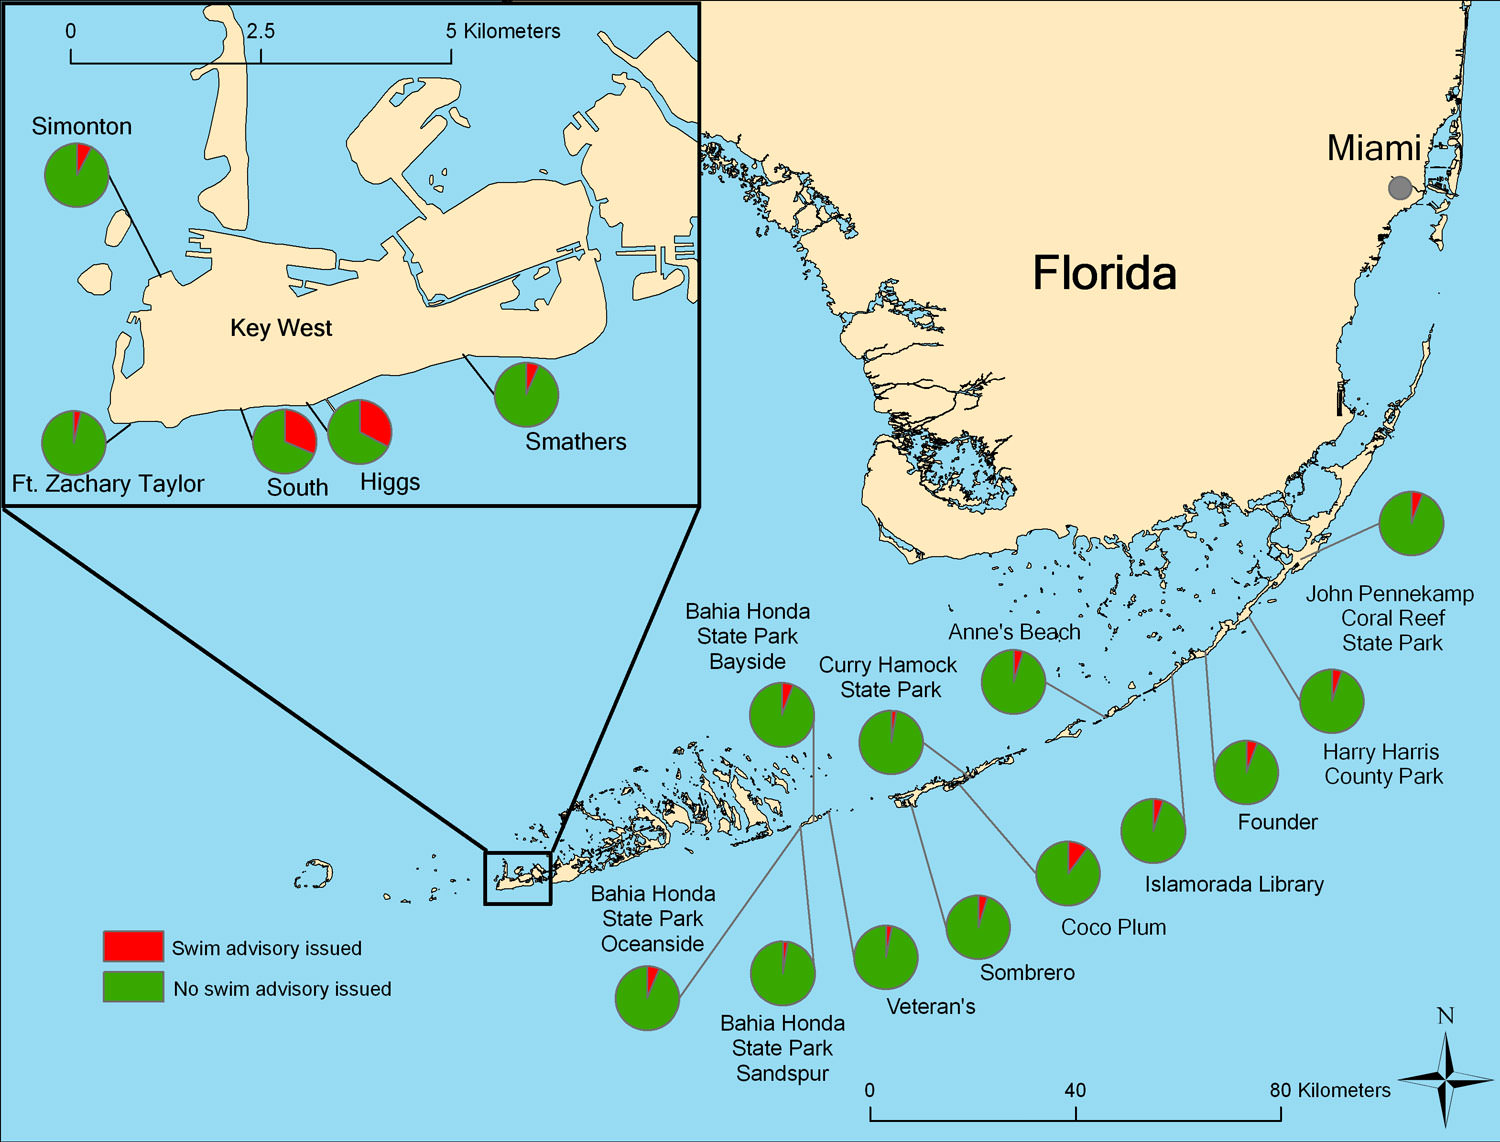 Florida keys 2011 condition report swim advisories issued in southern florida pie charts represent the mean annual proportion of time nvjuhfo Image collections